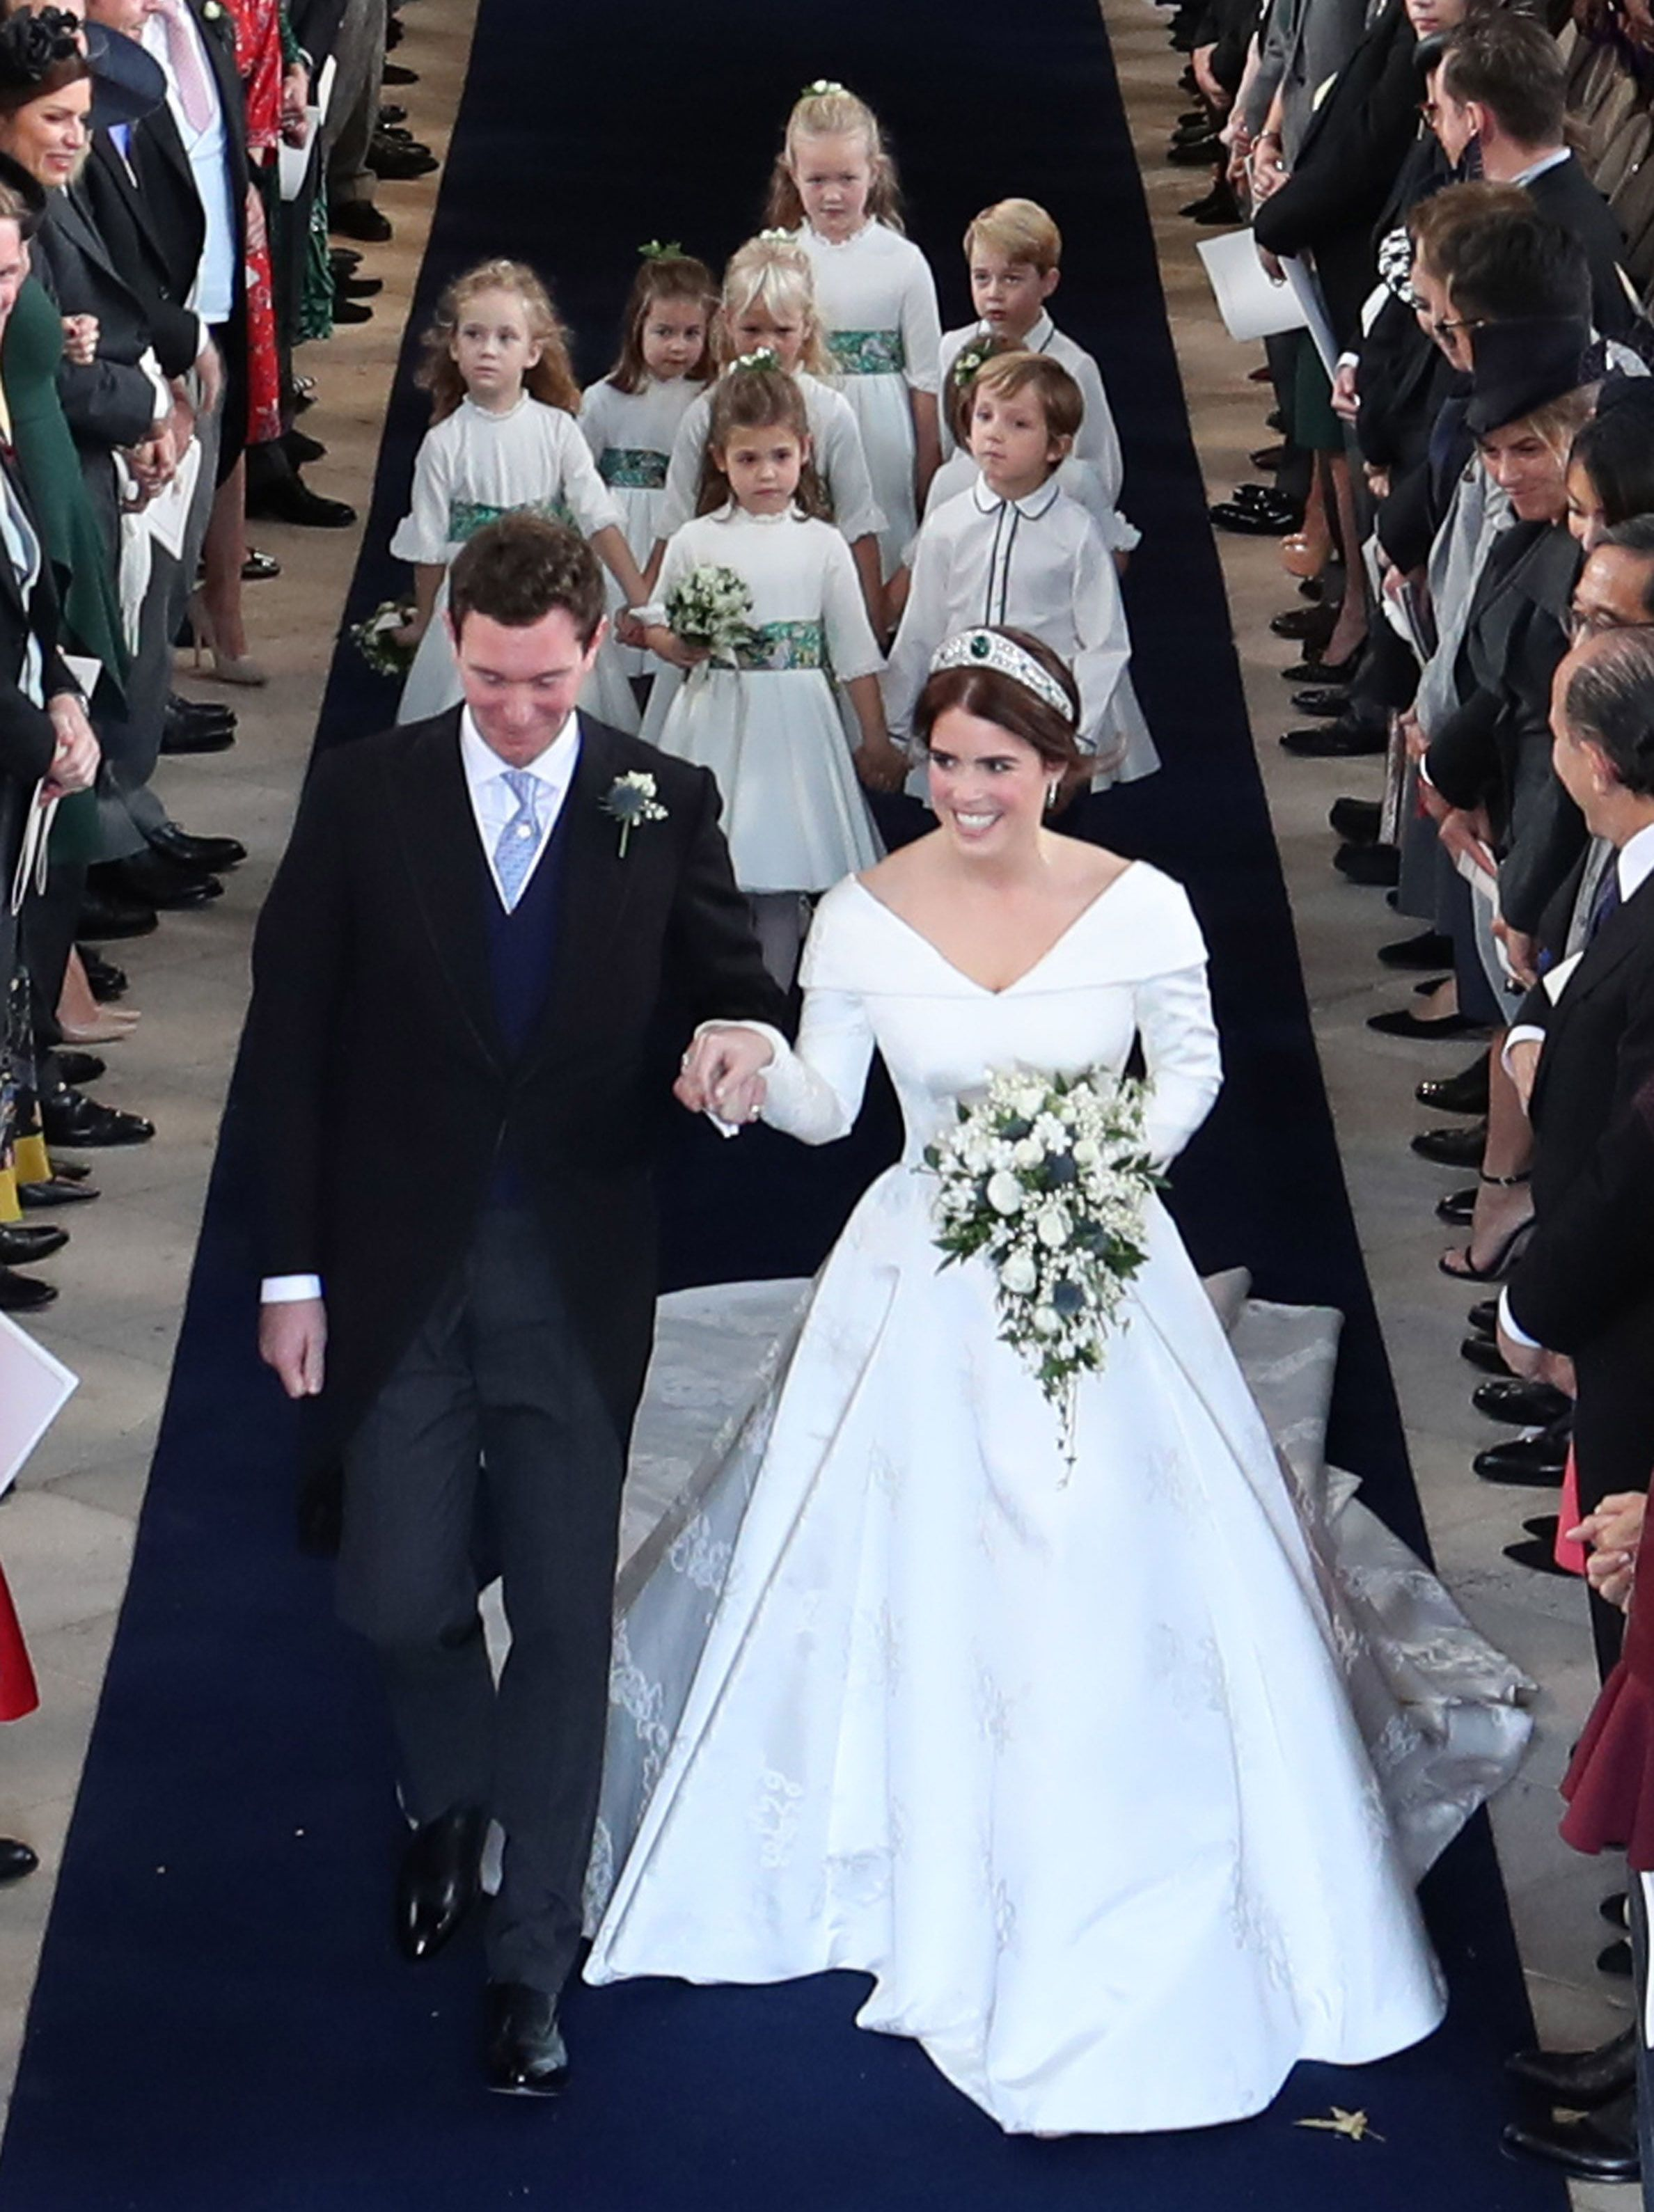 Princess Eugenie S Walk Down The Aisle Was A Seismic Moment After Scoliosis Surgery At Age 12 Eugenie Wedding Royal Wedding Gowns Royal Wedding Dress [ 3178 x 2376 Pixel ]